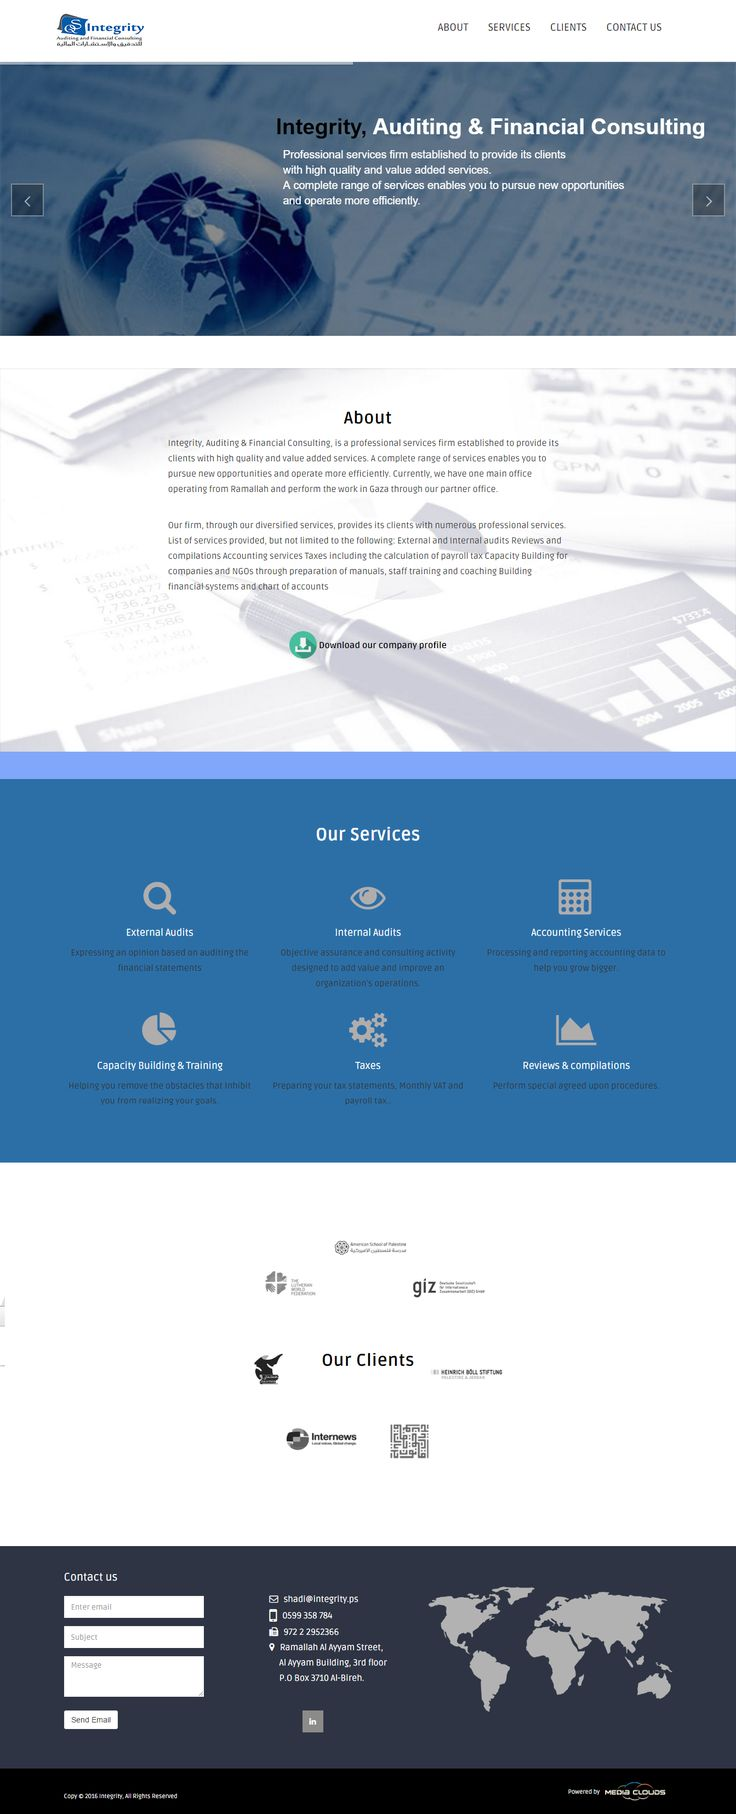 Web development and designing for a financial consulting company. From color palettes to interactive features, our team has worked to reflect the company's mission and vision #websites #webdesign #webdevelopment #design #web #trends #technology